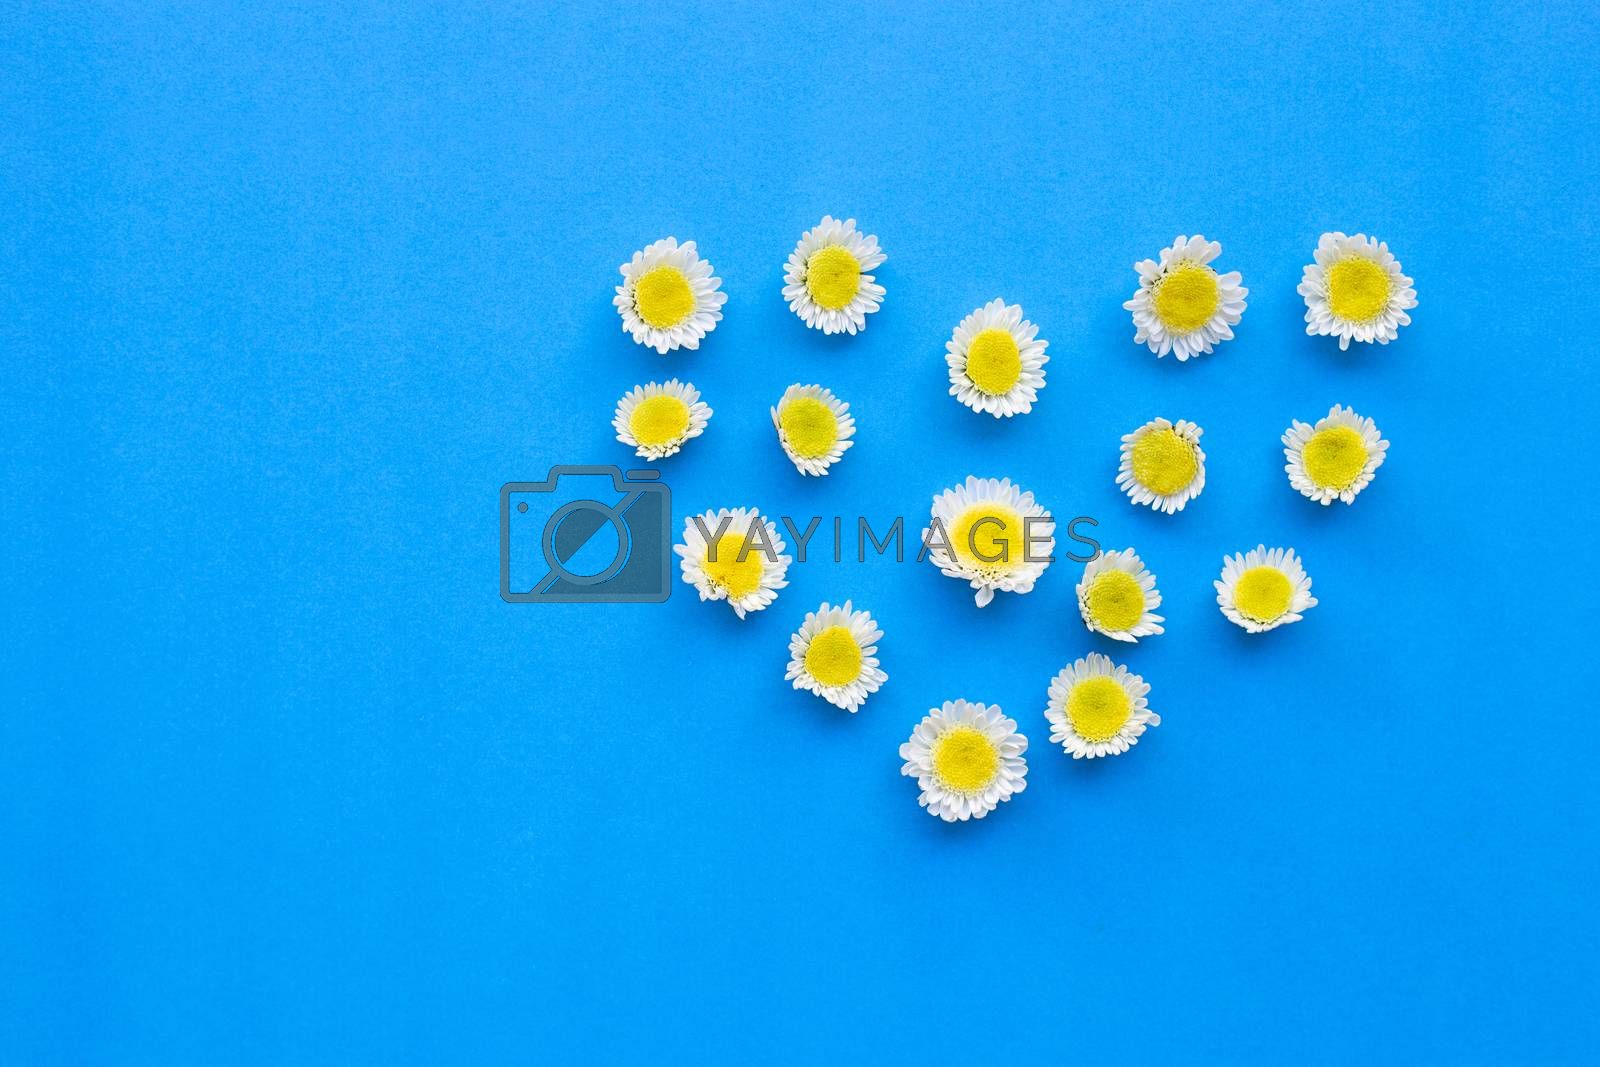 Composition of white yellow flowers. Chrysanthemums on blue paper background